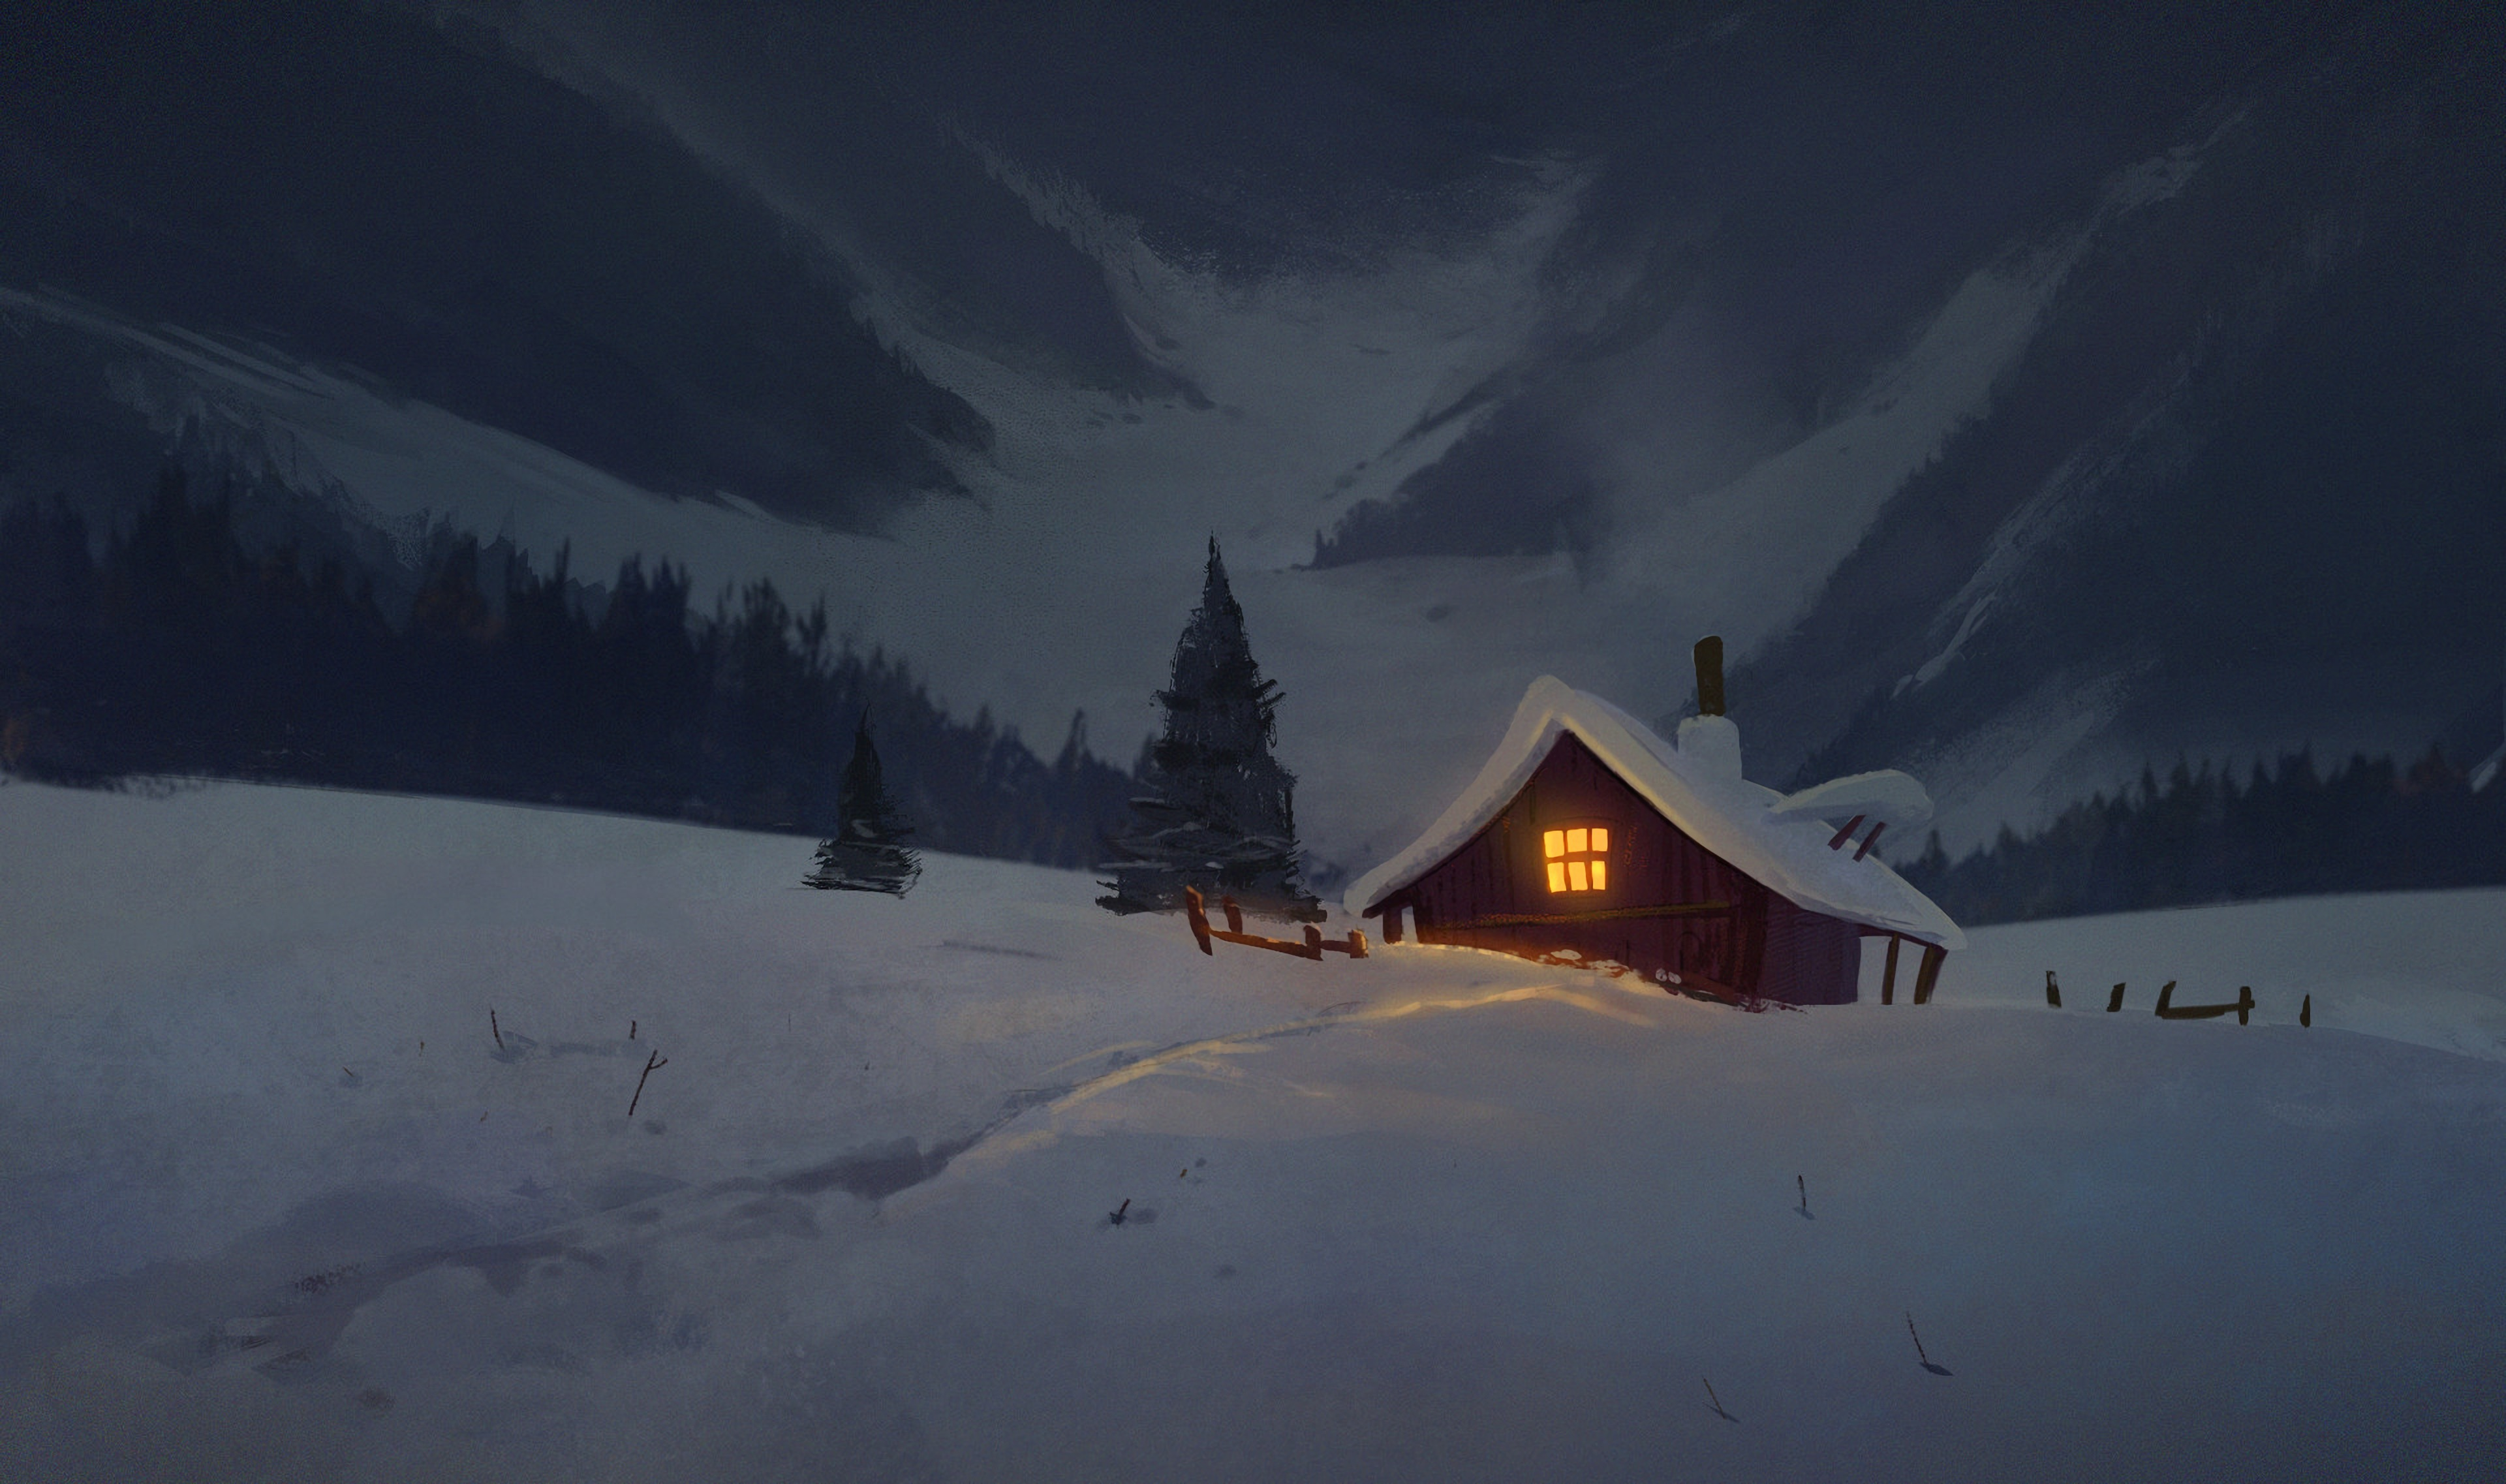 108990 download wallpaper Art, Night, Snow, House, Izba screensavers and pictures for free